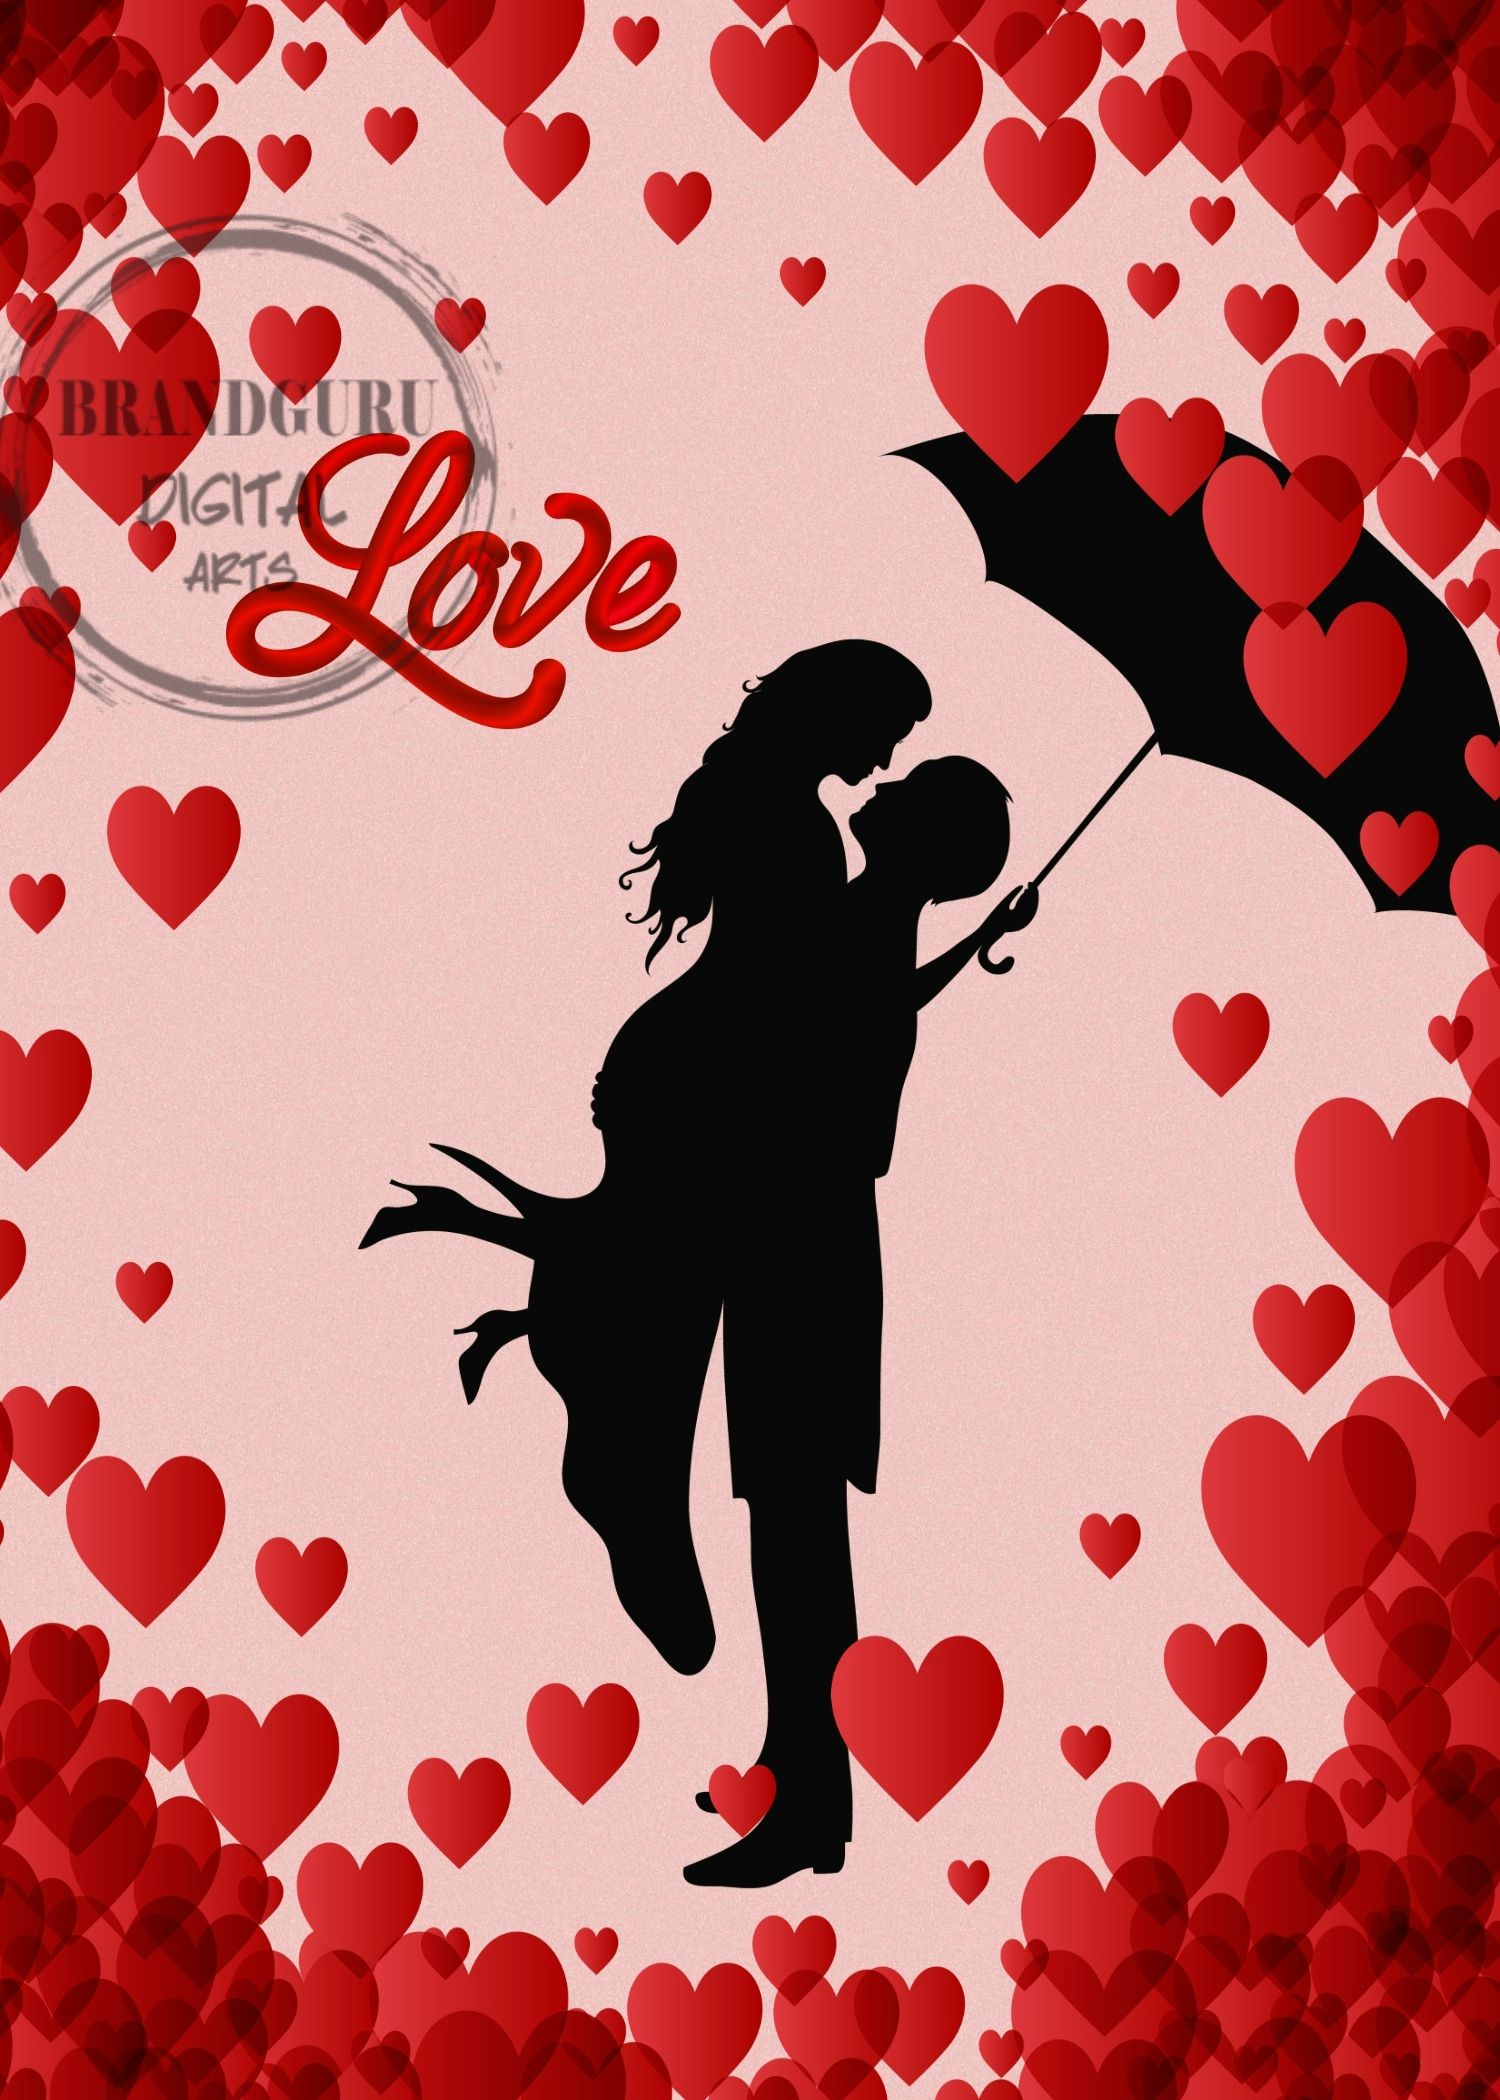 Wish Your Loved One With Beautiful Love Cards With Images Love